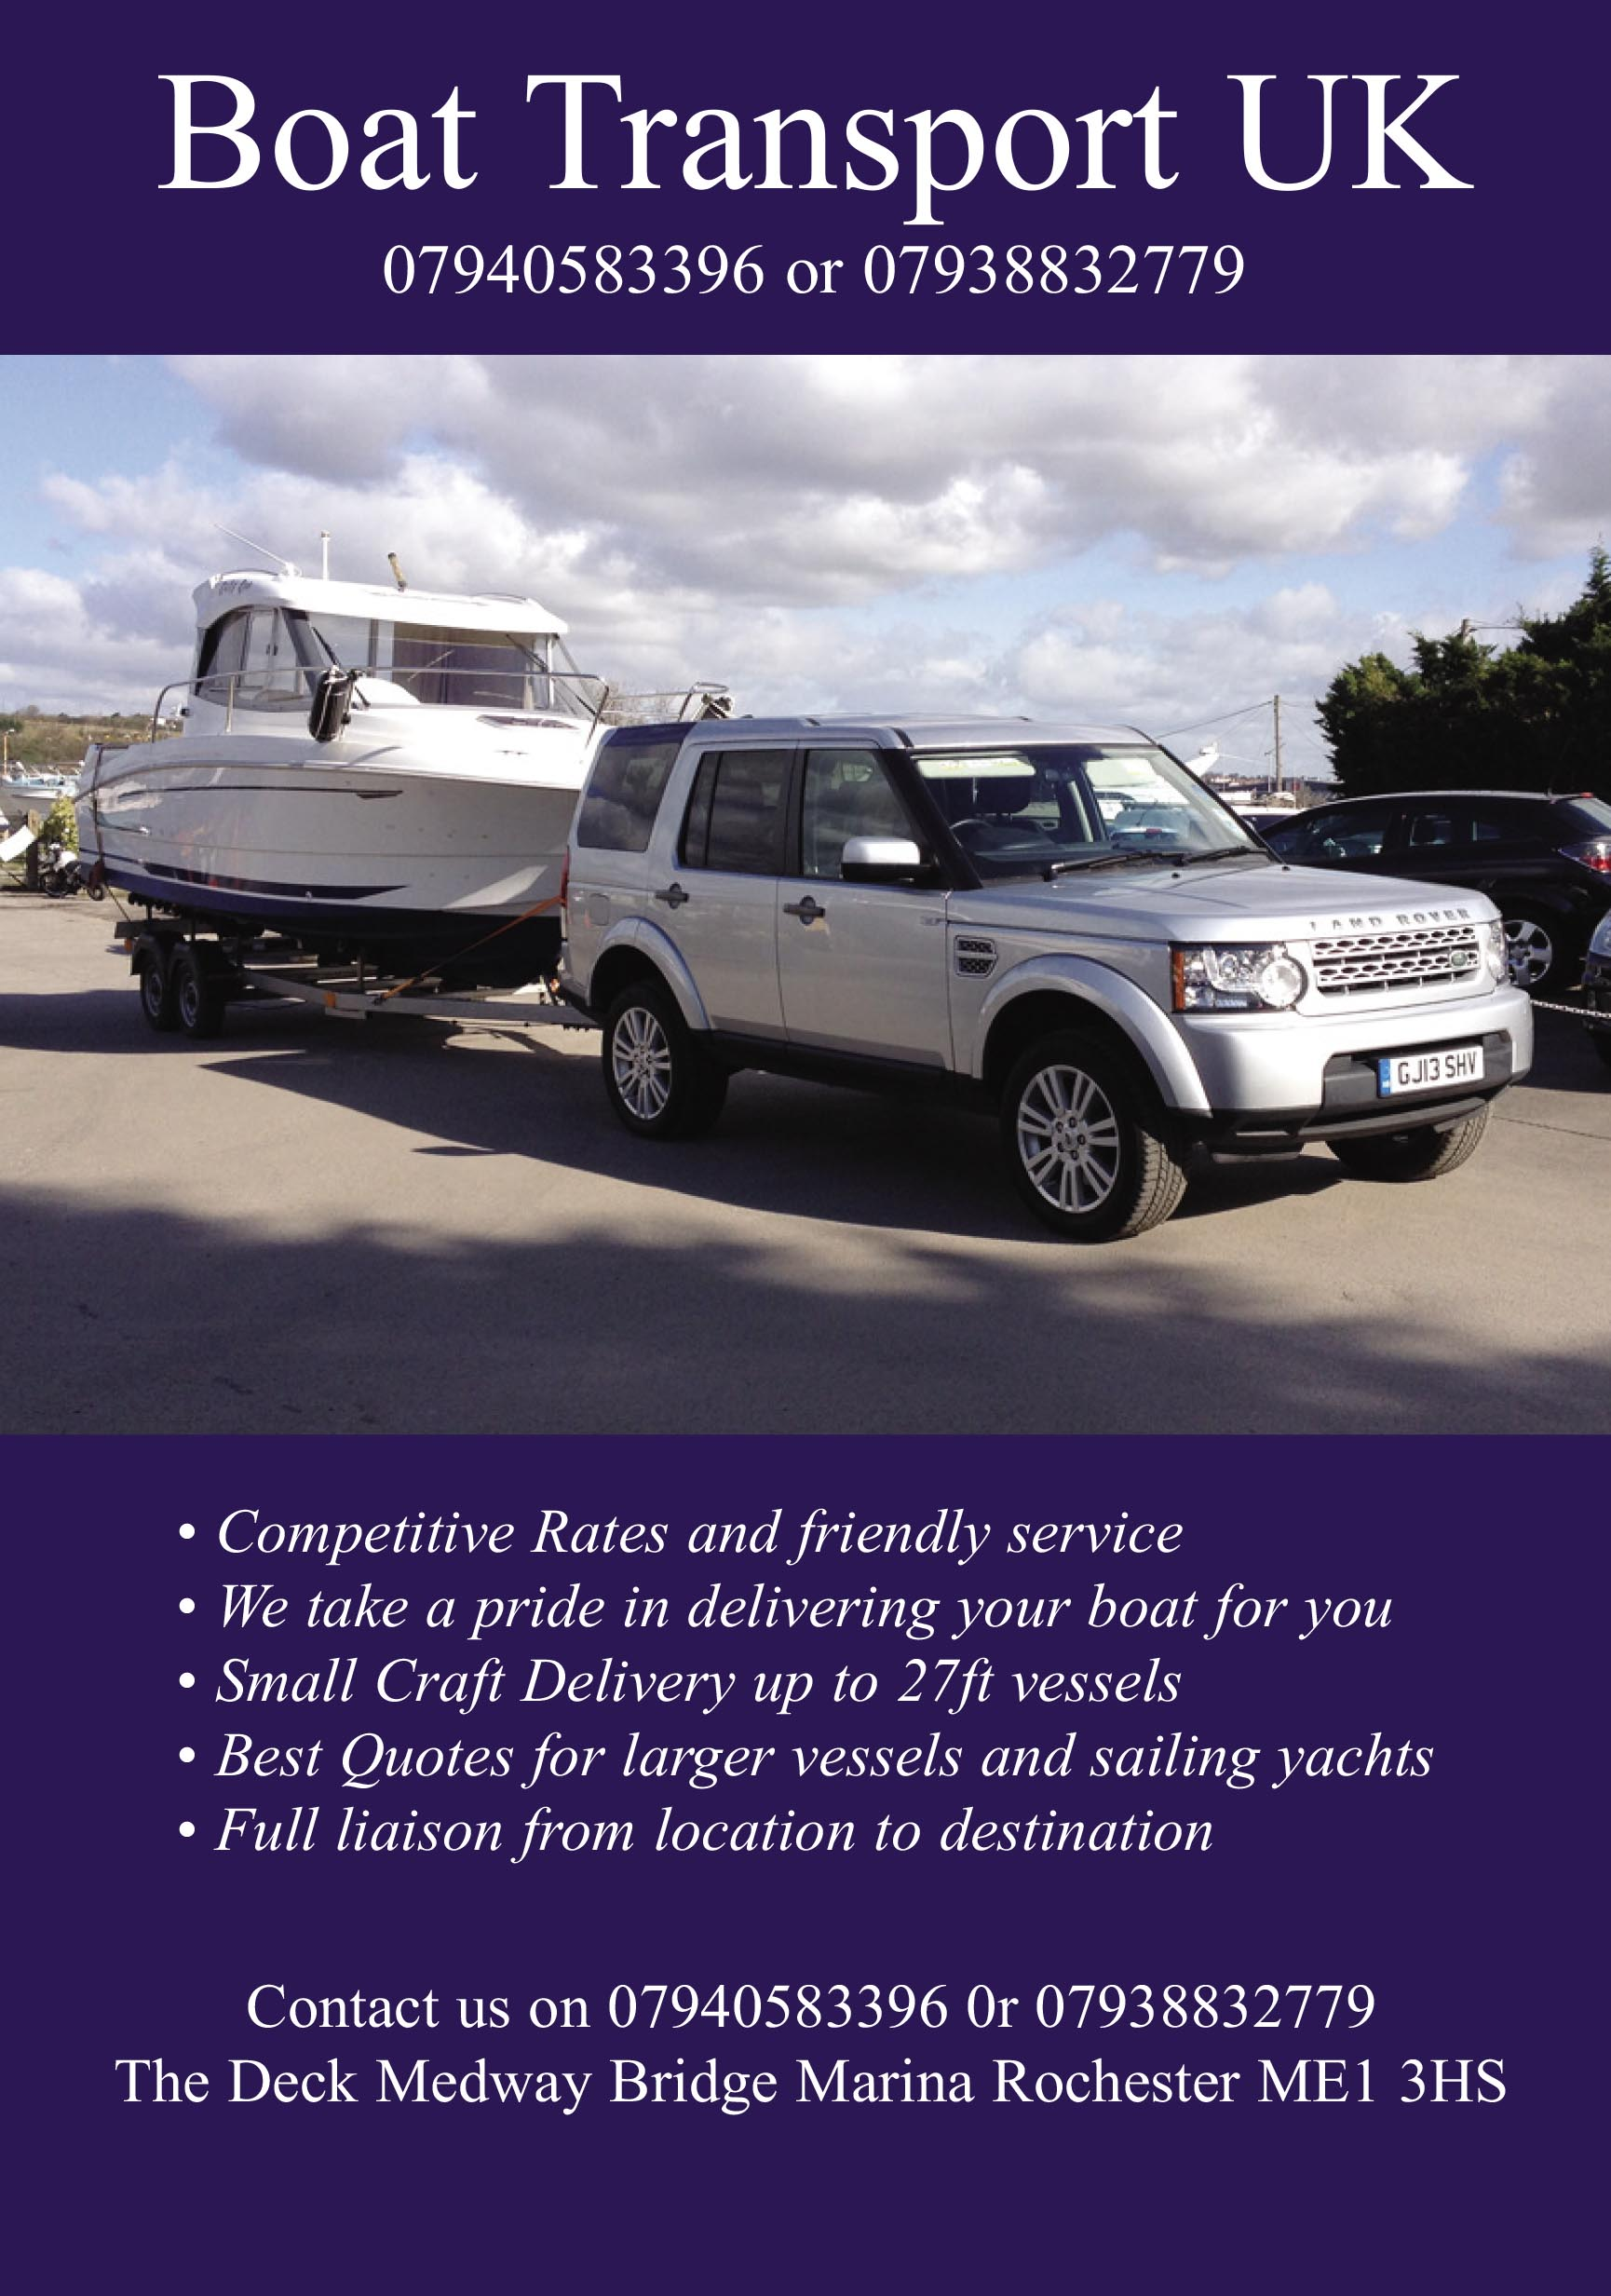 Boat Transport UK